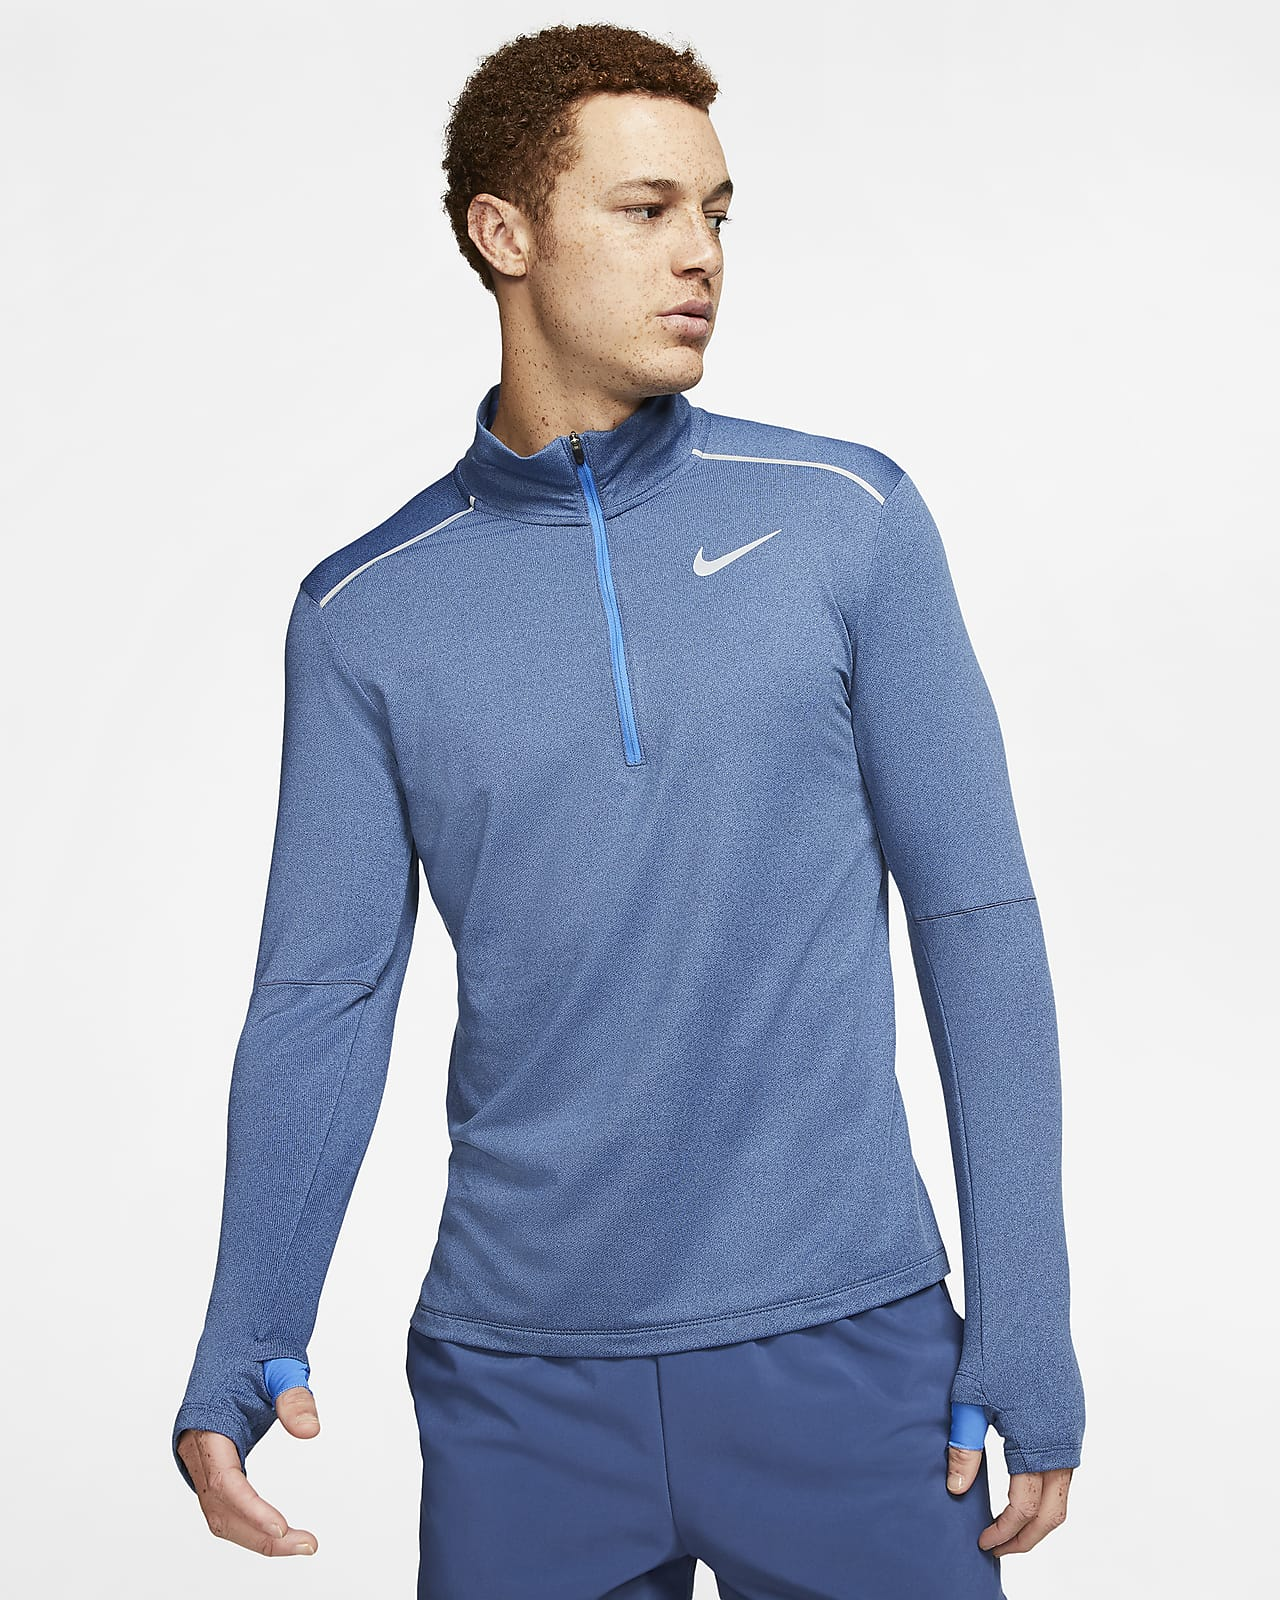 Nike Element 3.0 Men's 1/2-Zip Running